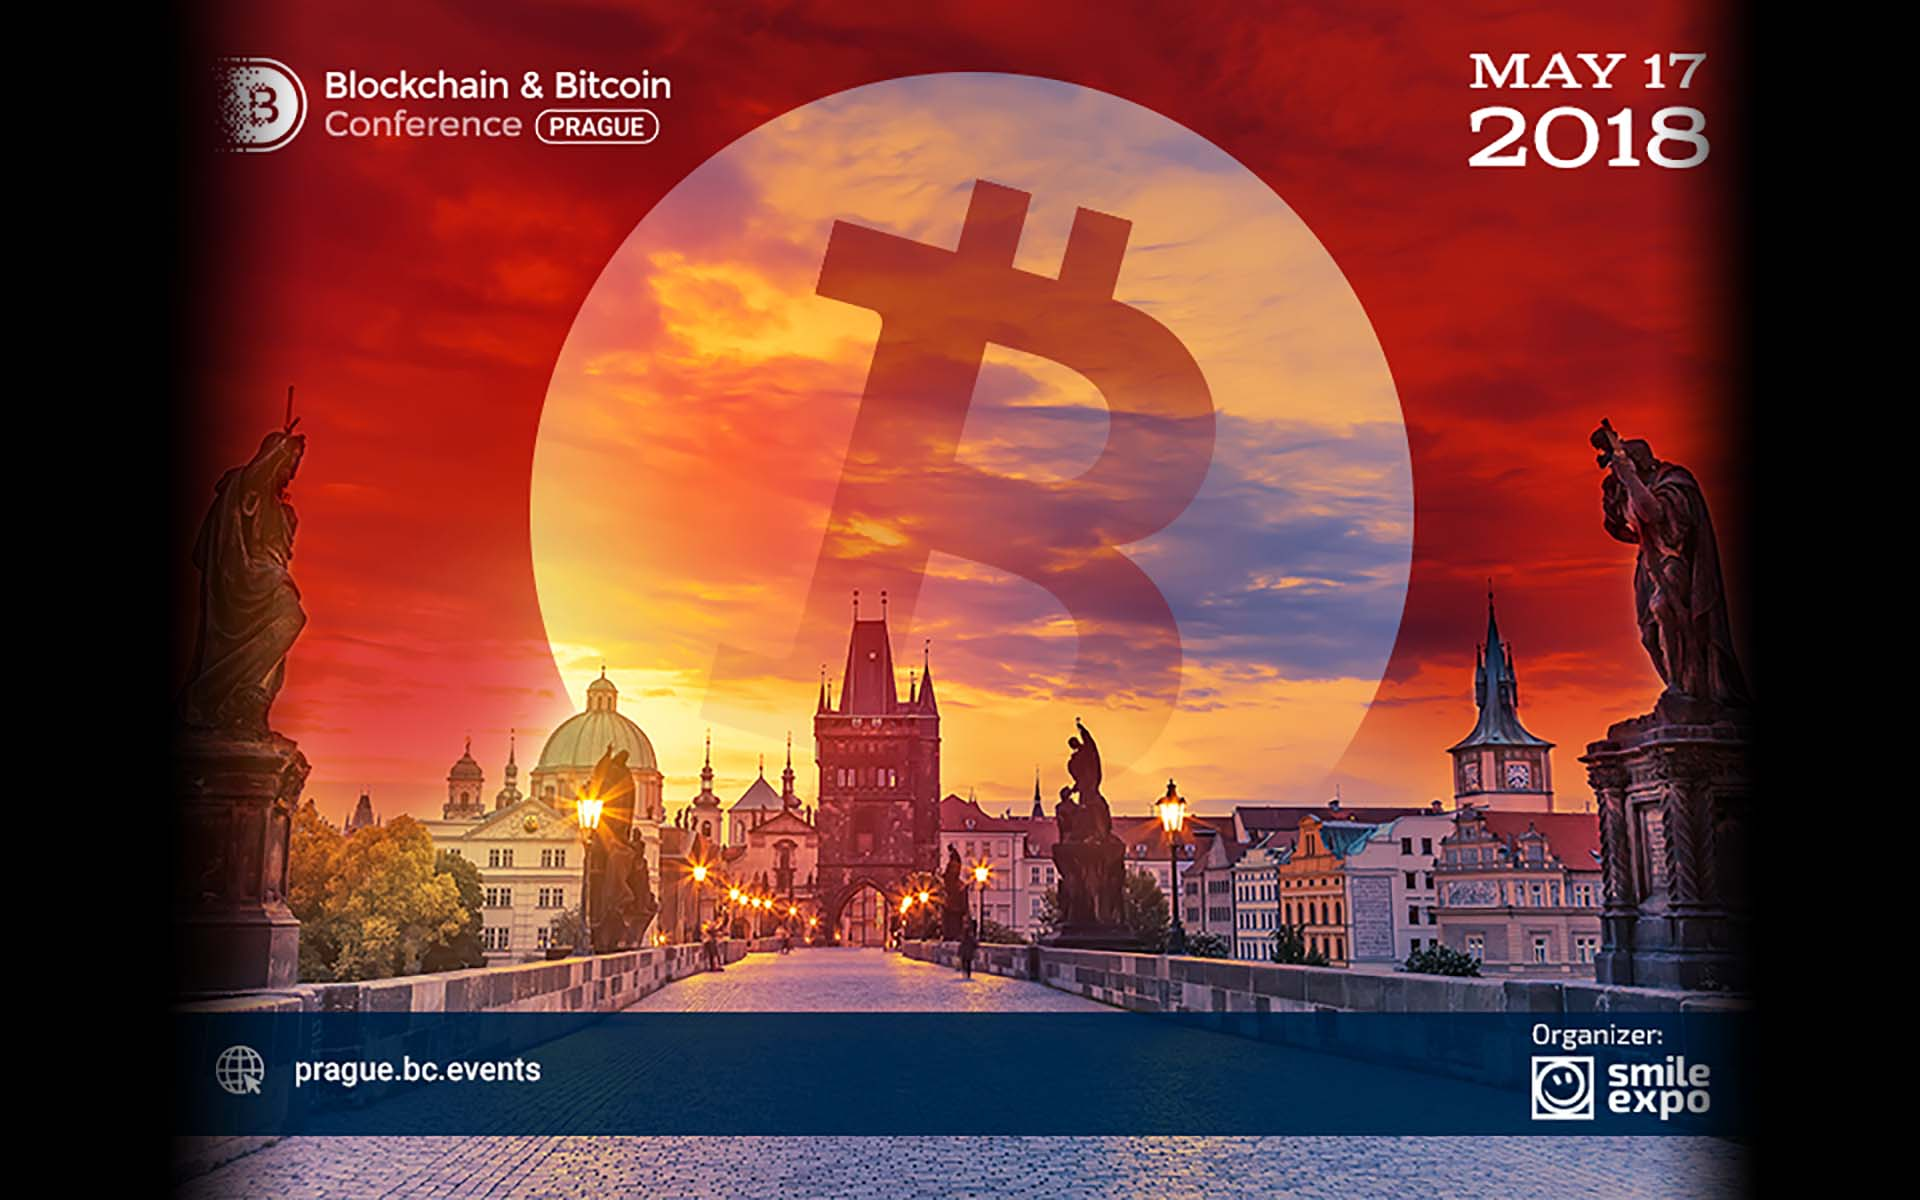 Cryptocurrency and Blockchain Regulation in Healthcare. Results of Blockchain & Bitcoin Conference Prague 2018